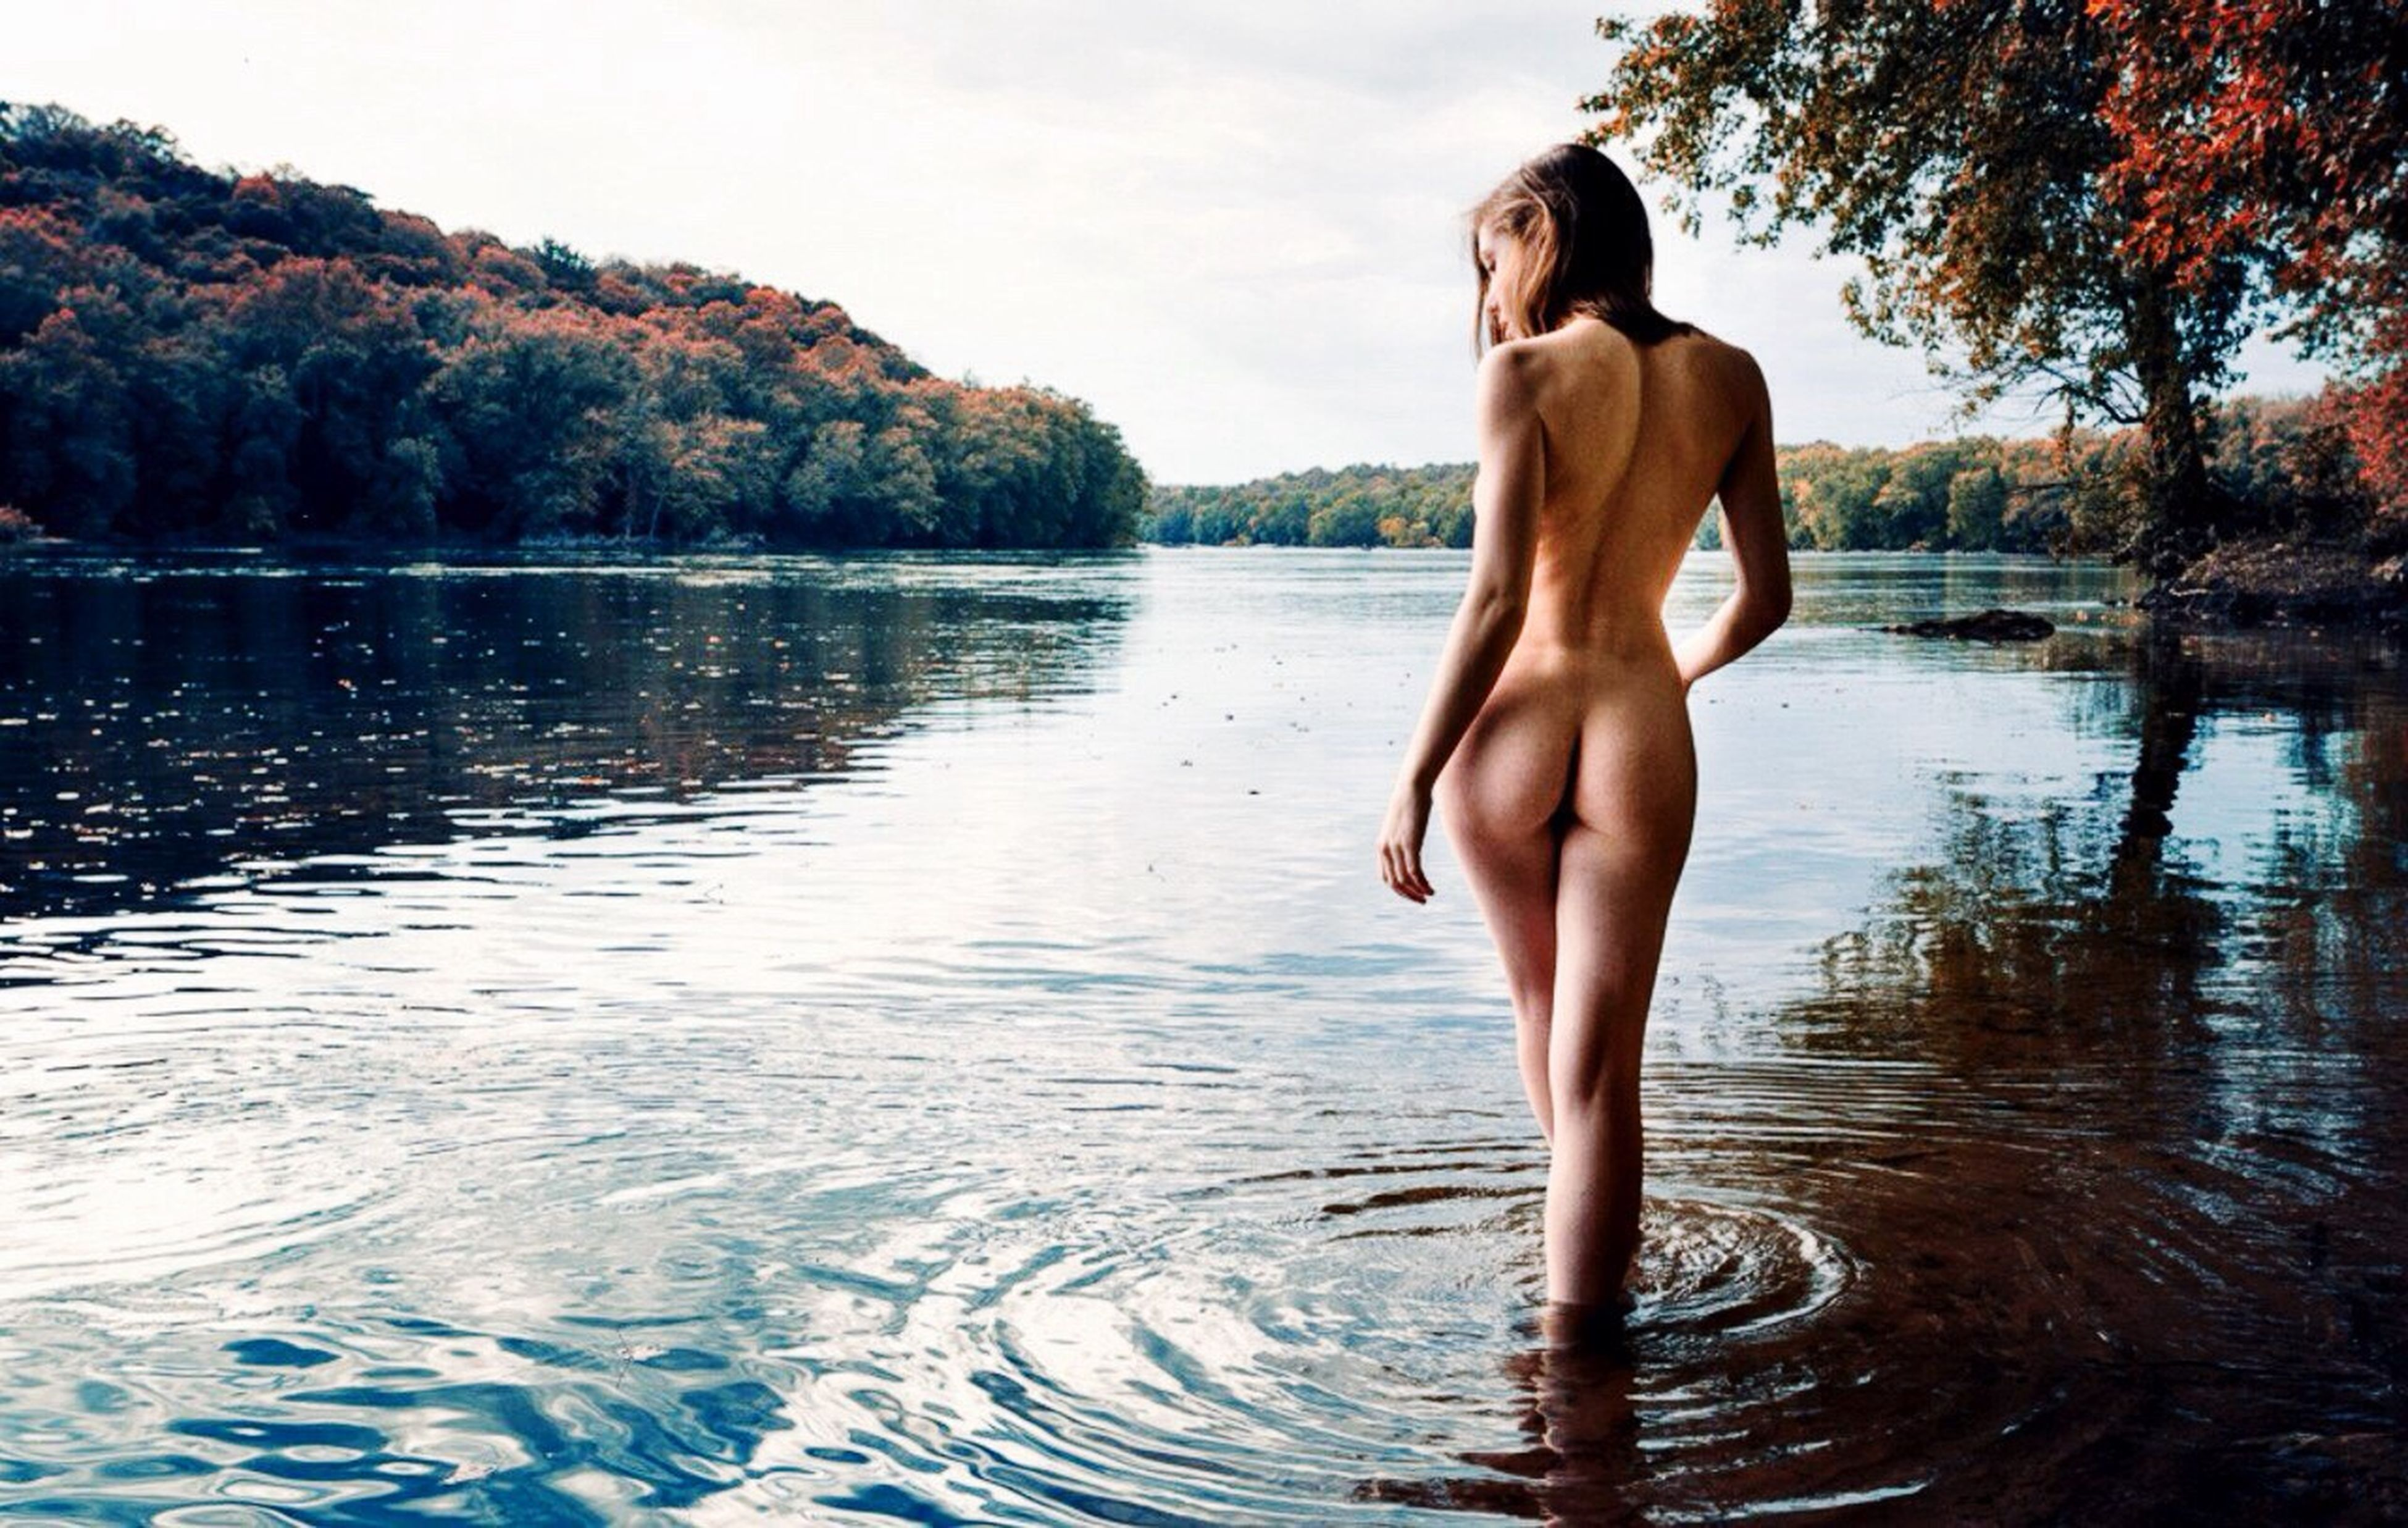 water, young adult, lifestyles, leisure activity, lake, tree, standing, waterfront, full length, person, young women, vacations, front view, nature, reflection, bikini, rippled, tranquility